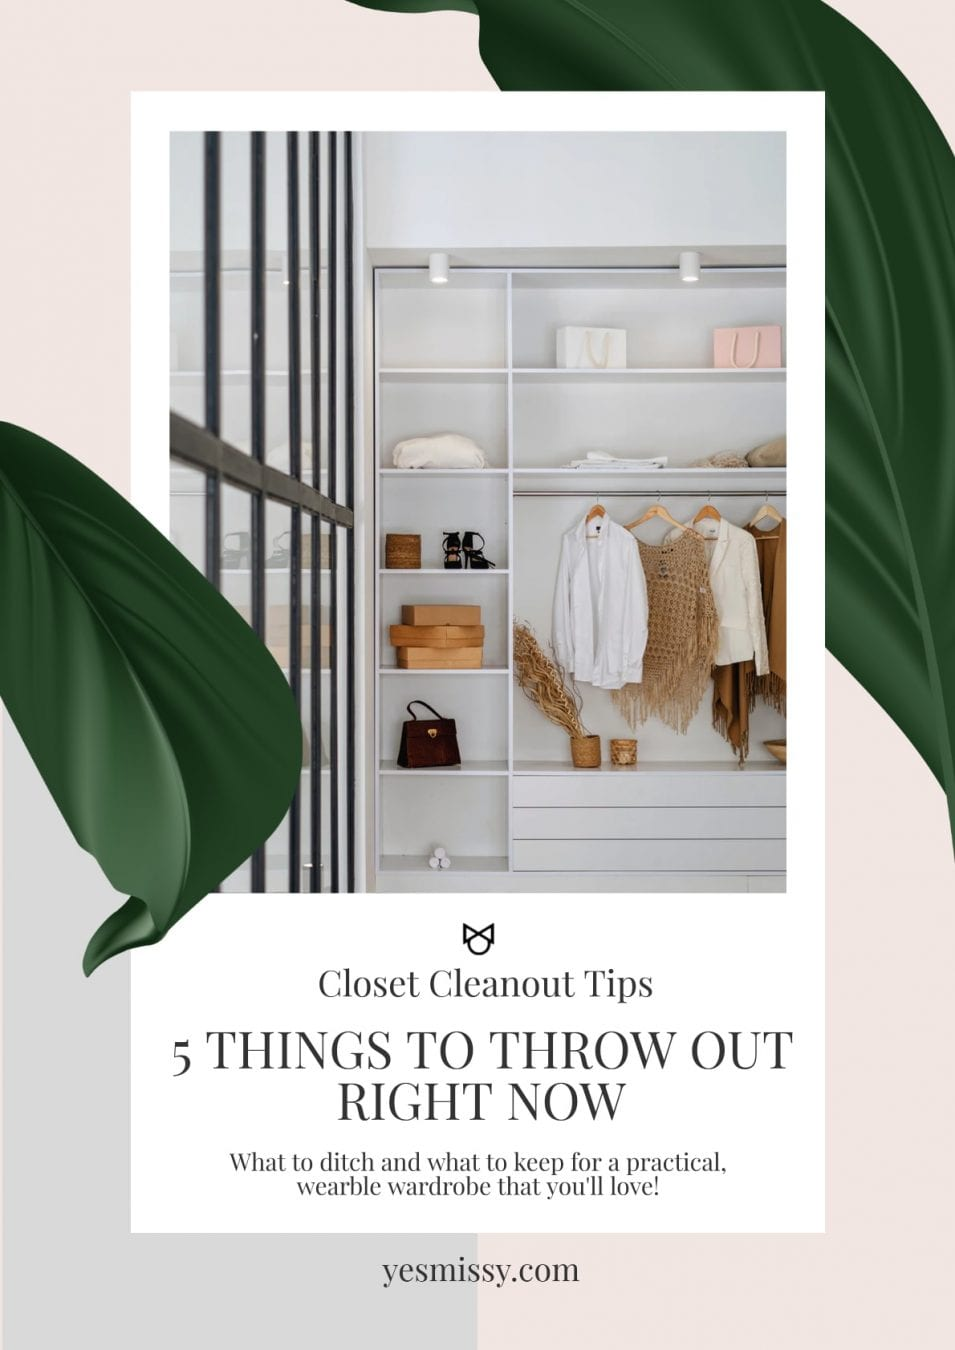 Practical tips to help you decide what to keep and what to throwout for a wearable wardrobe you'll love.